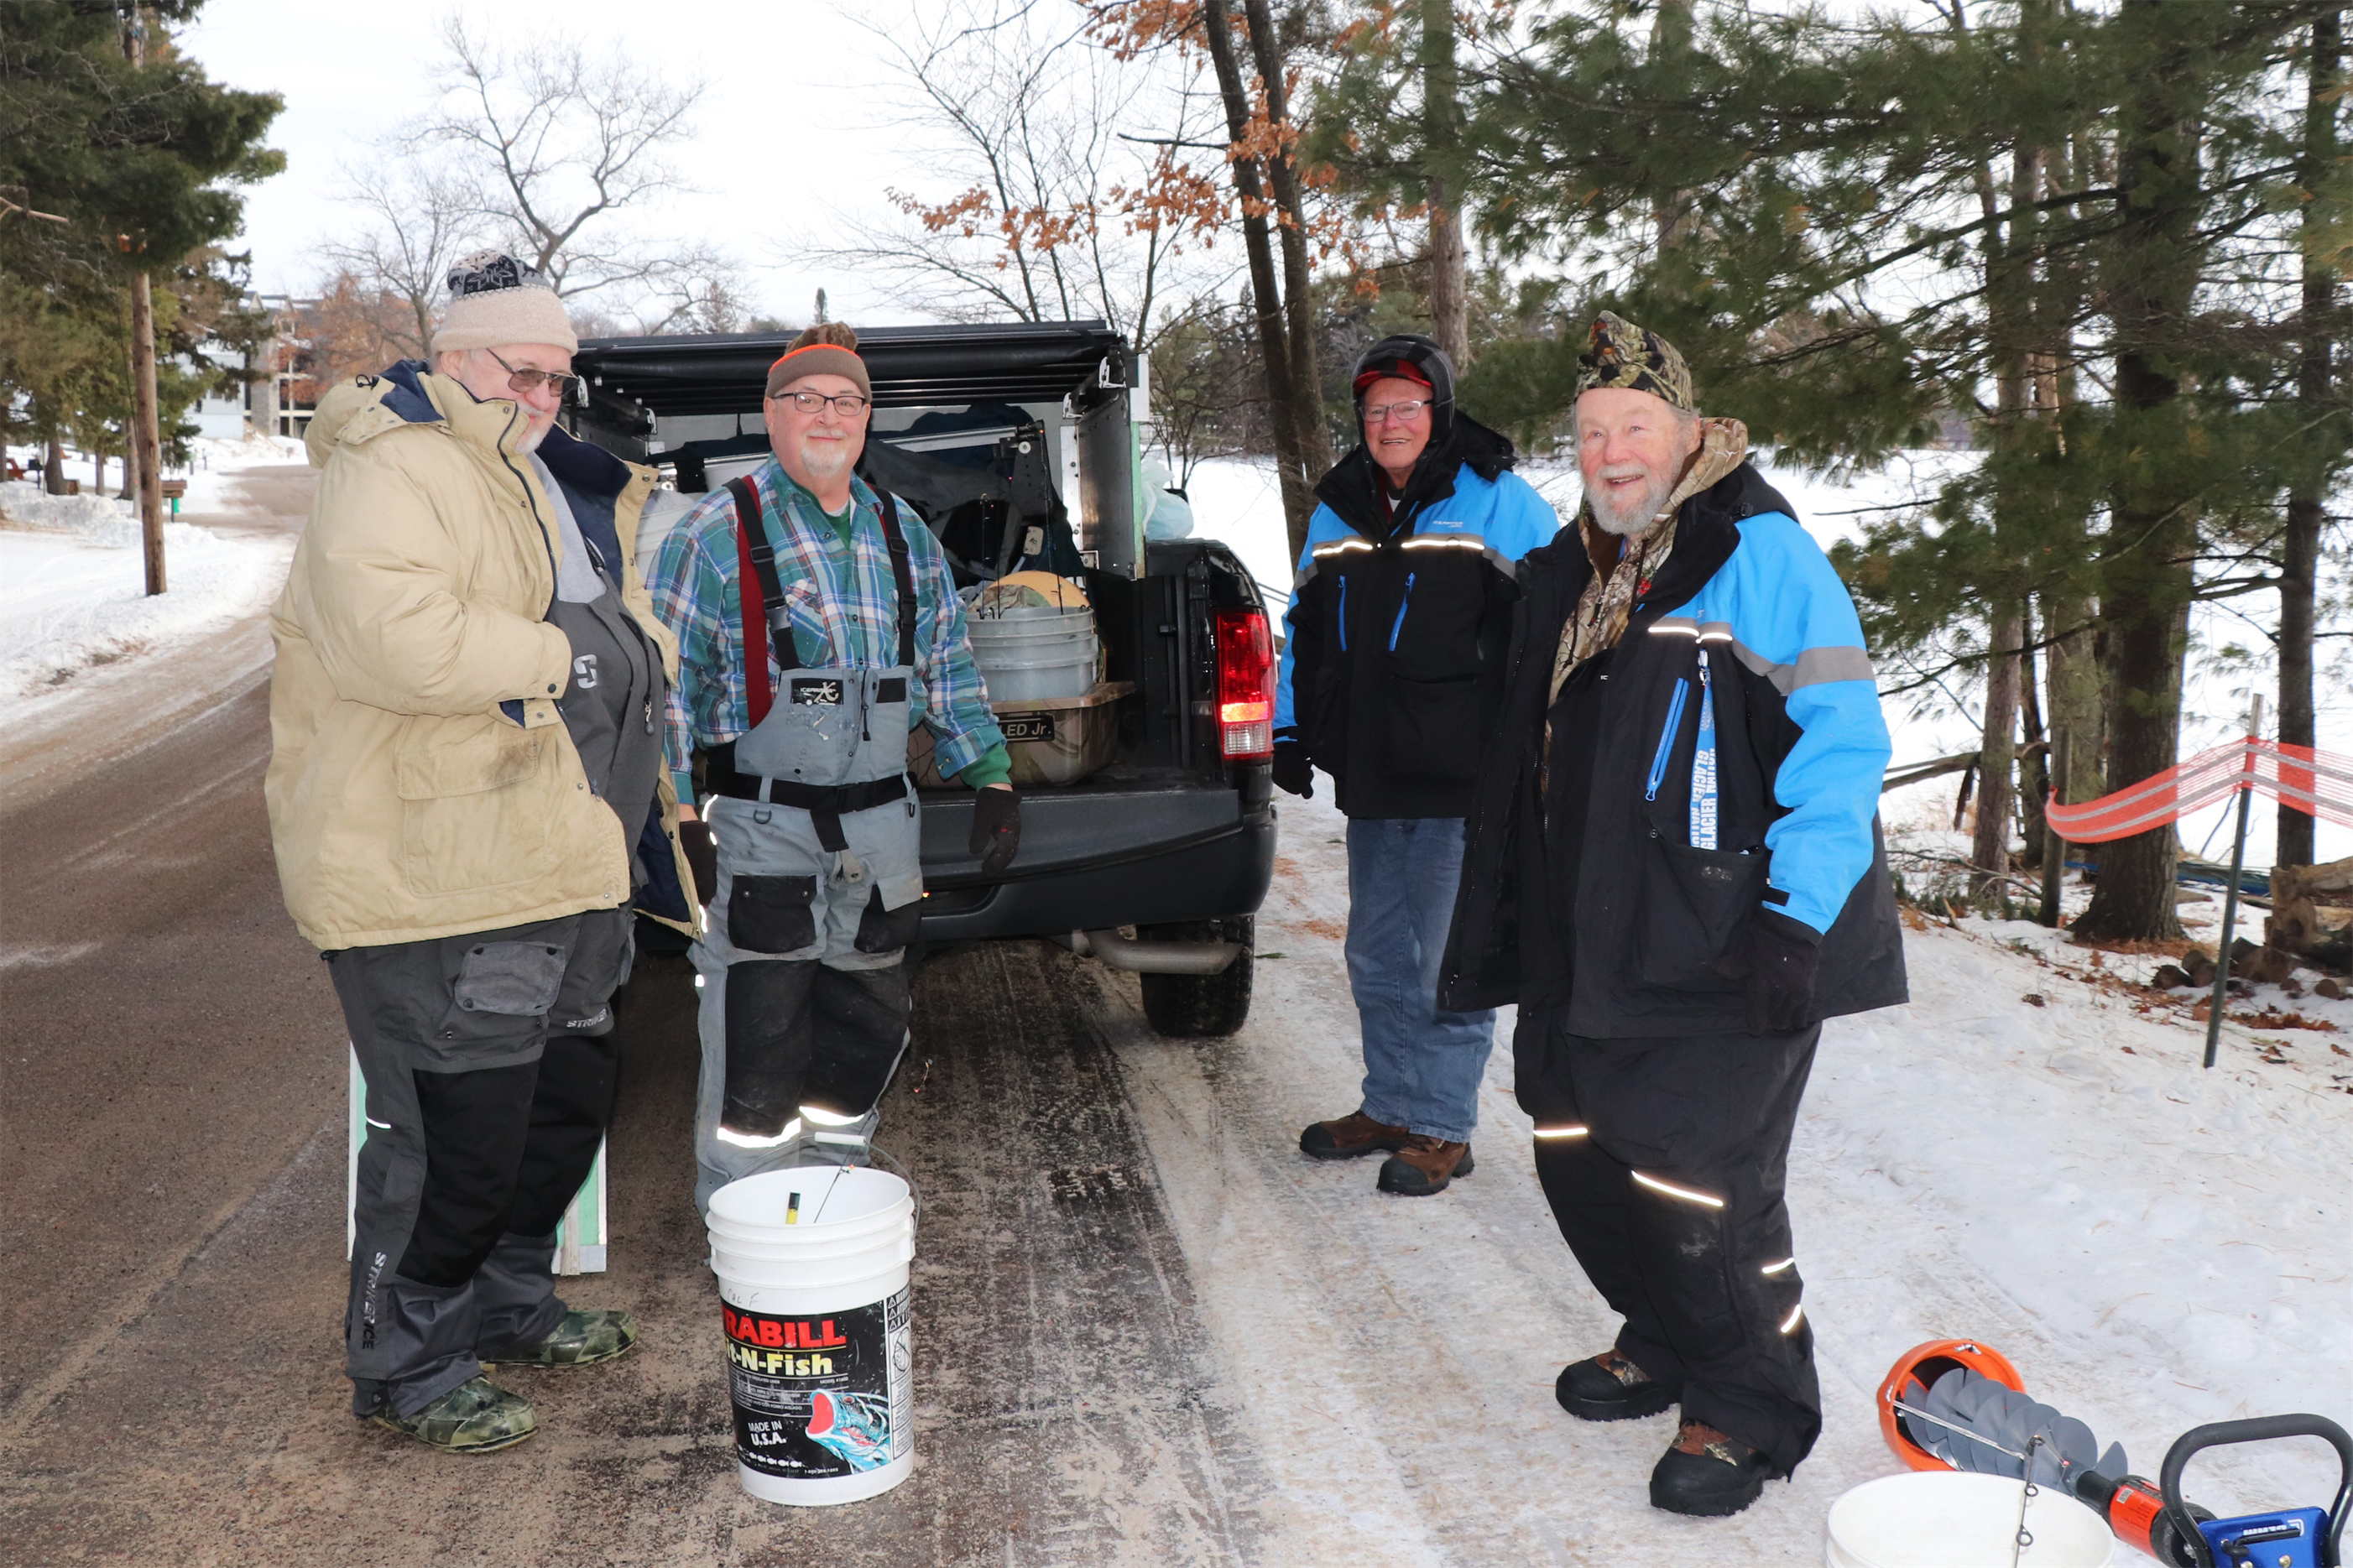 Ice anglers pose for a photo before trying their luck on Lake Minocqua. Kim Johnson photo